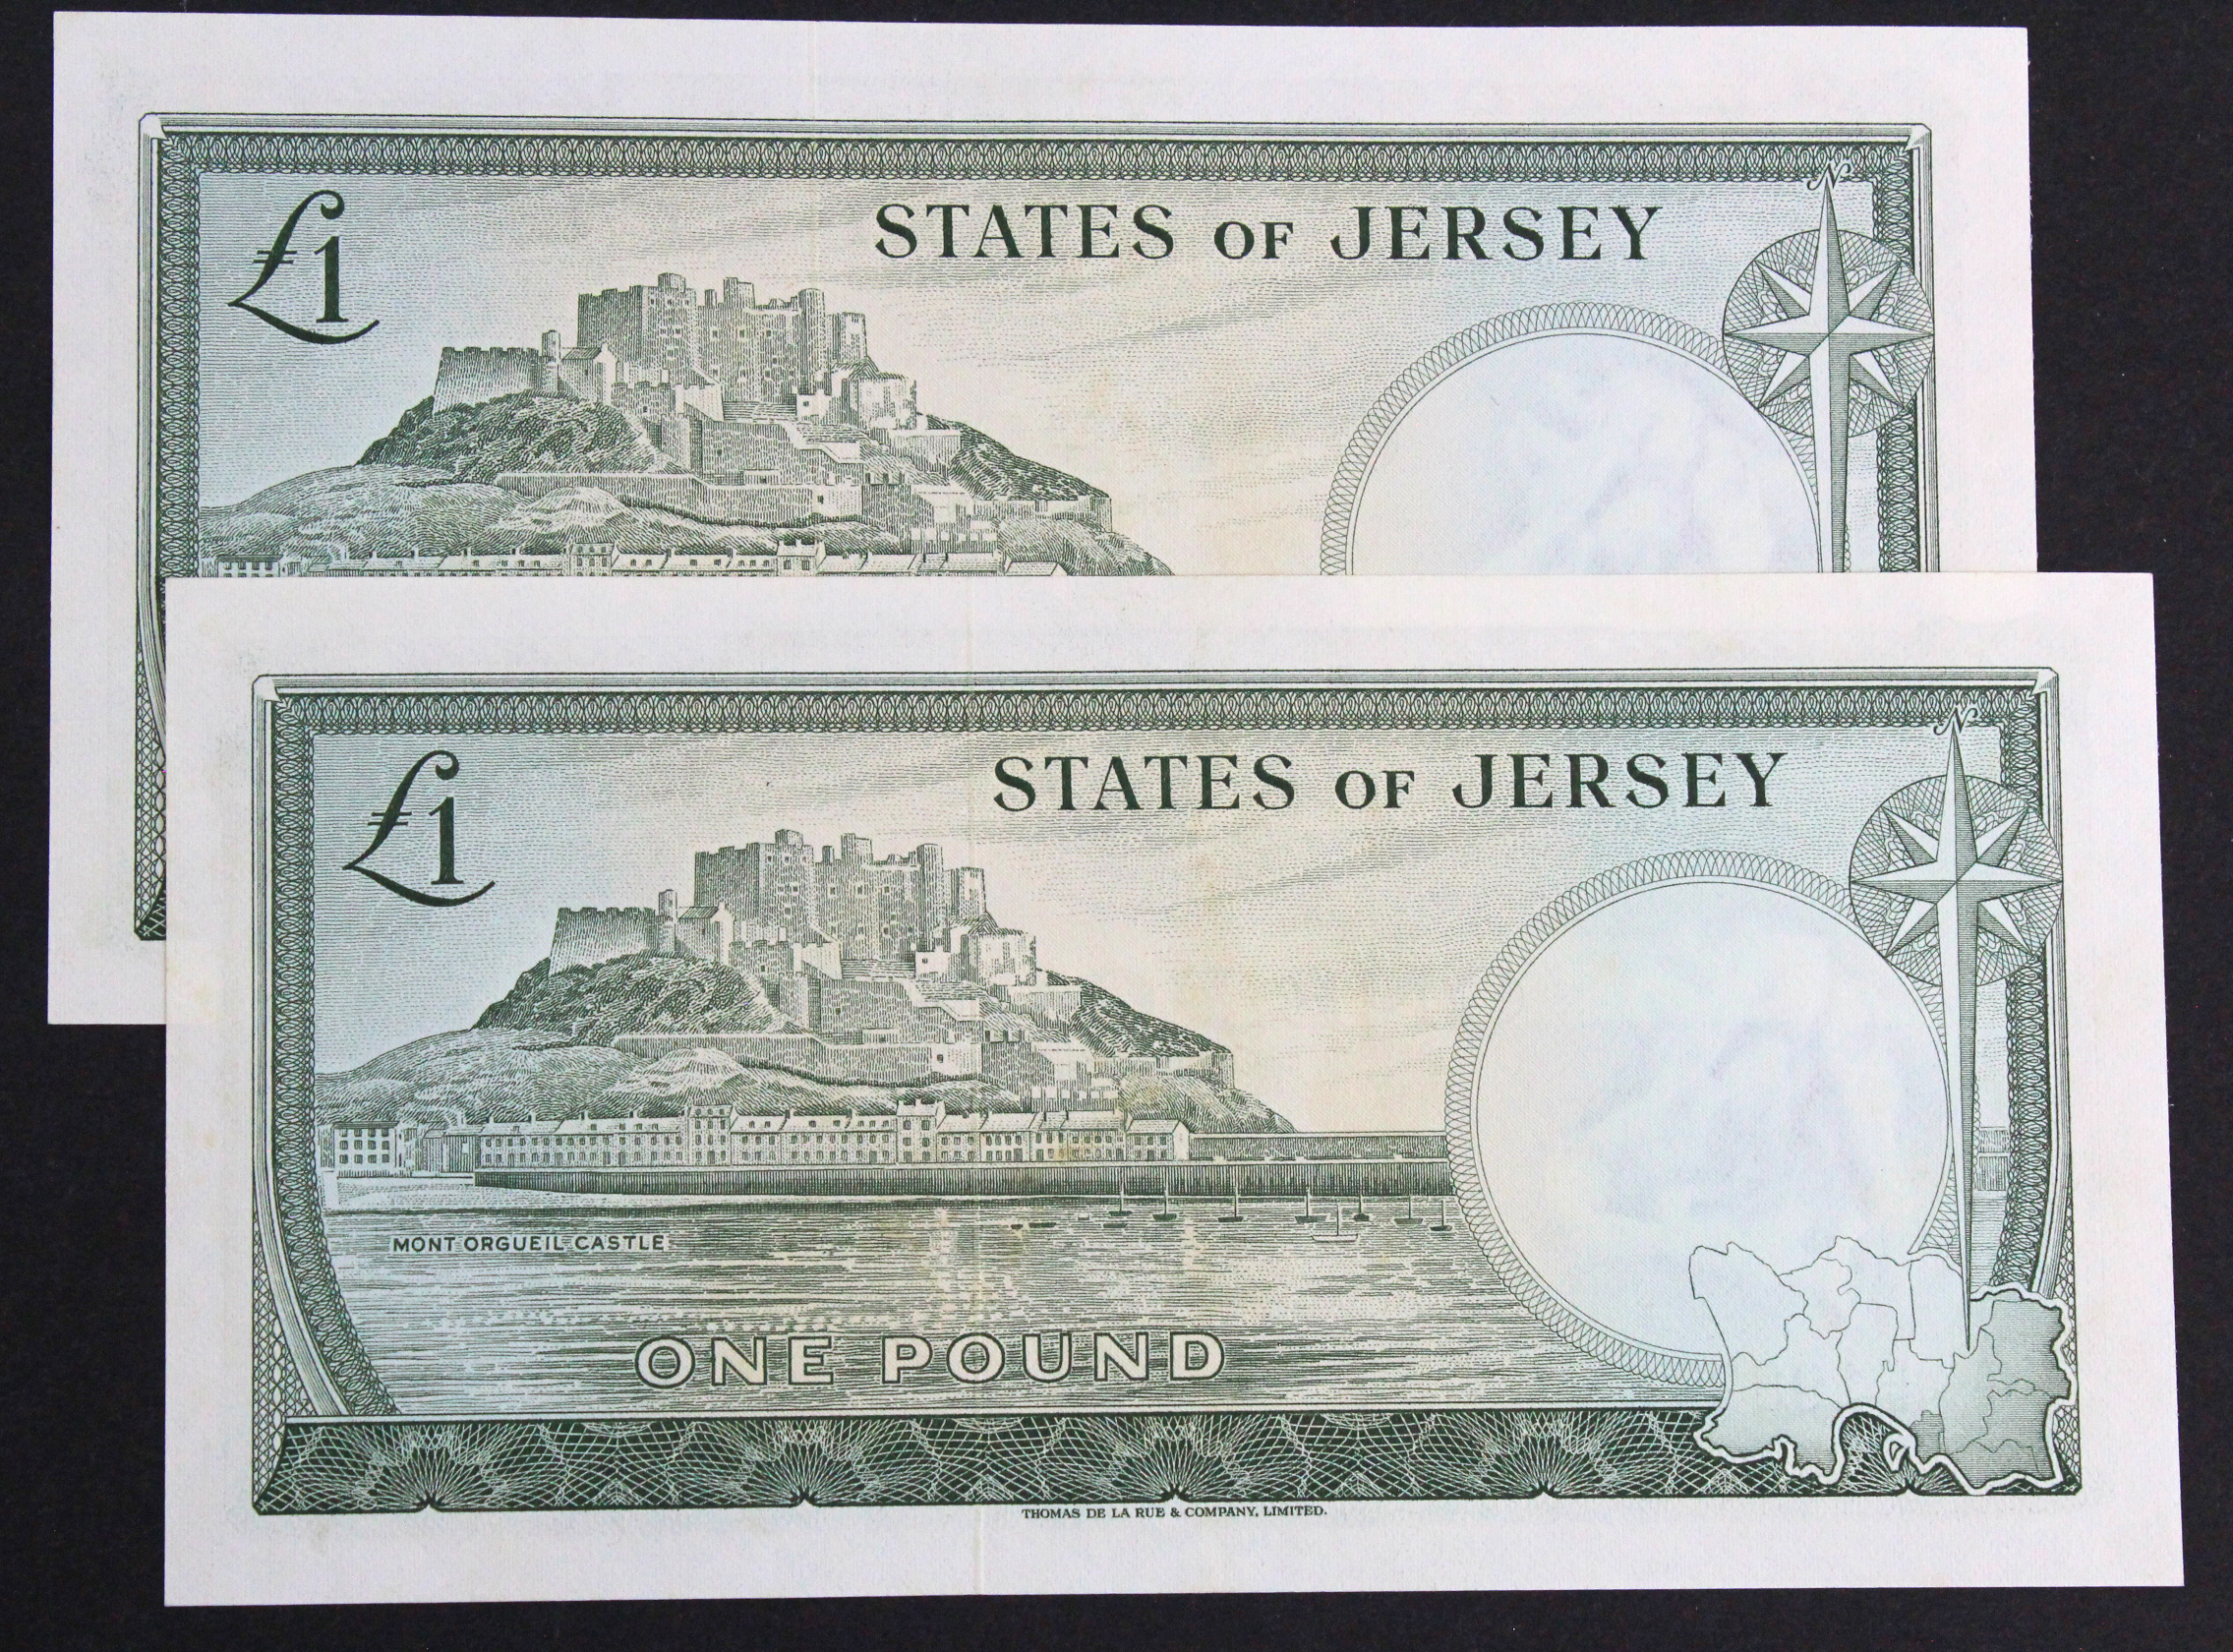 Jersey 1 Pound (2) issued 1963, signed F.N. Padgham, a consecutively numbered pair, serial E198975 & - Image 2 of 2